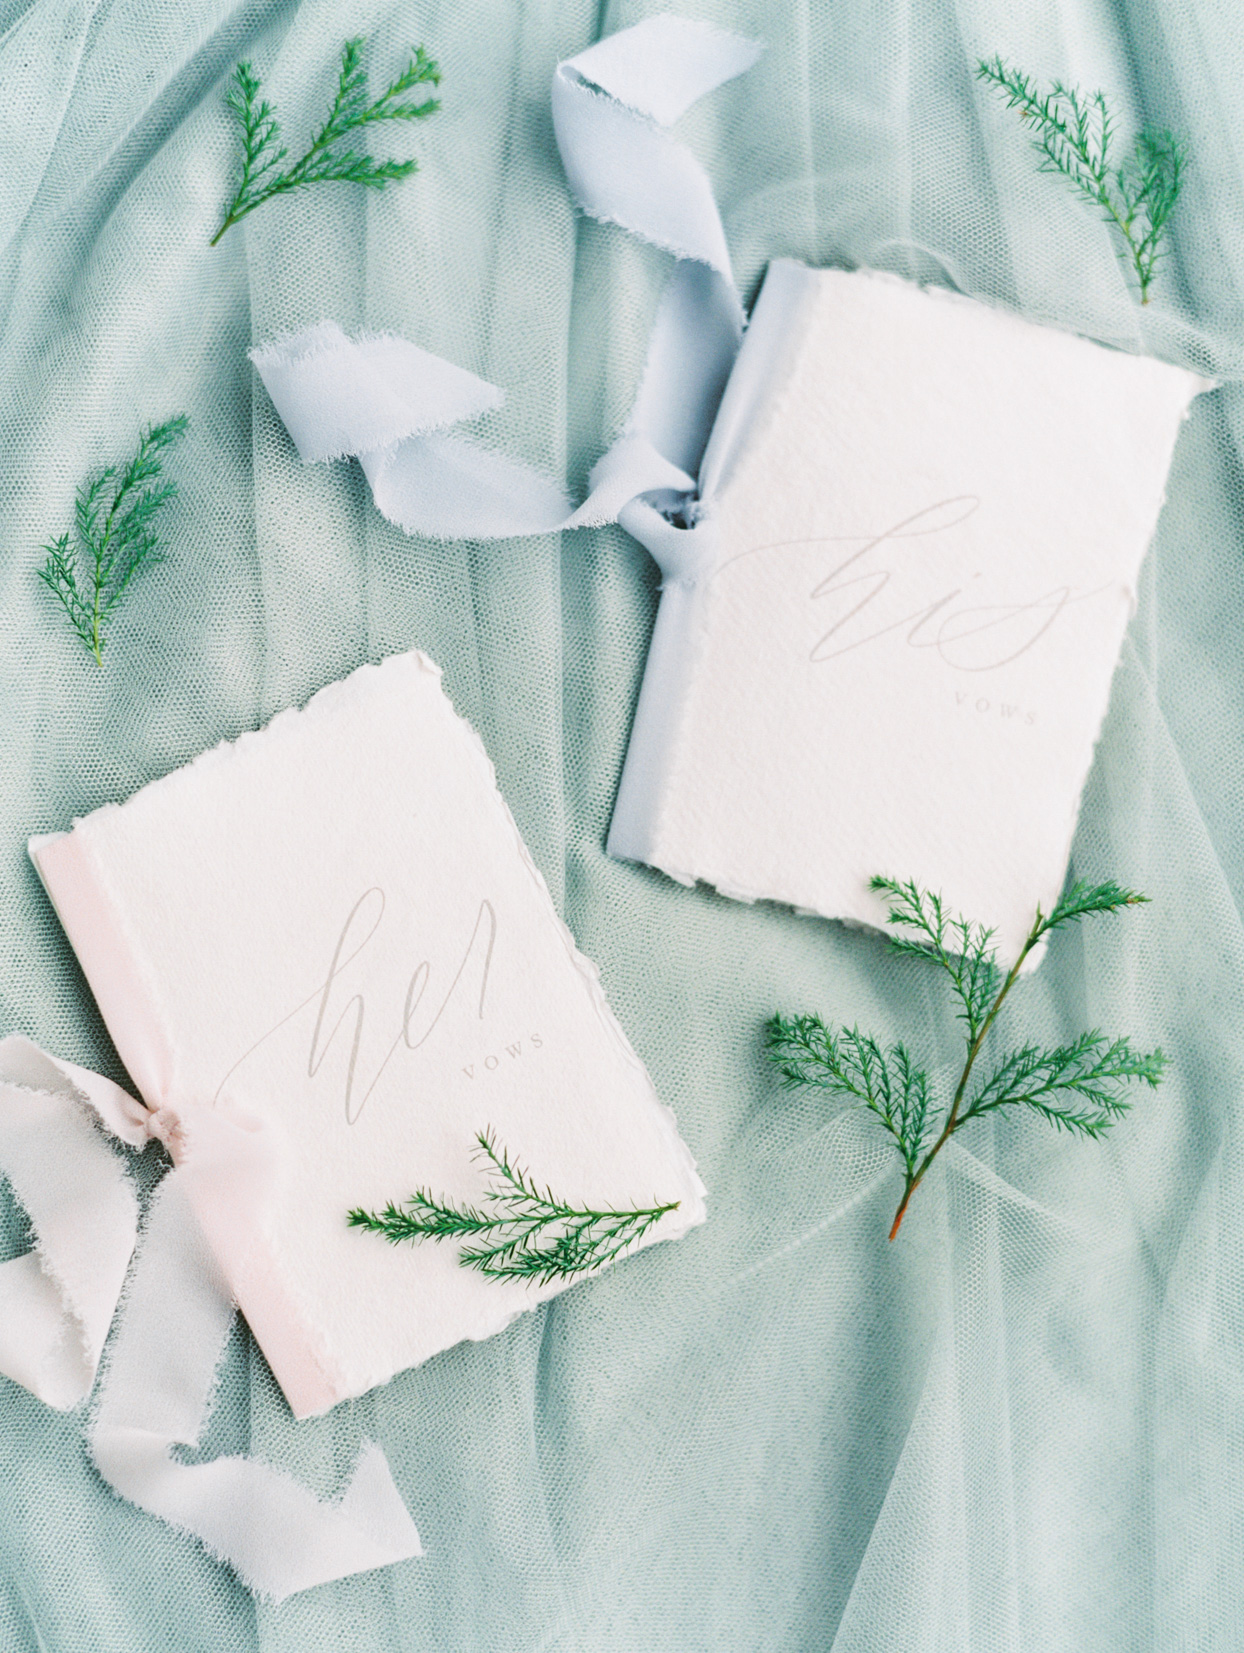 vow books with torn edges and festive greenery